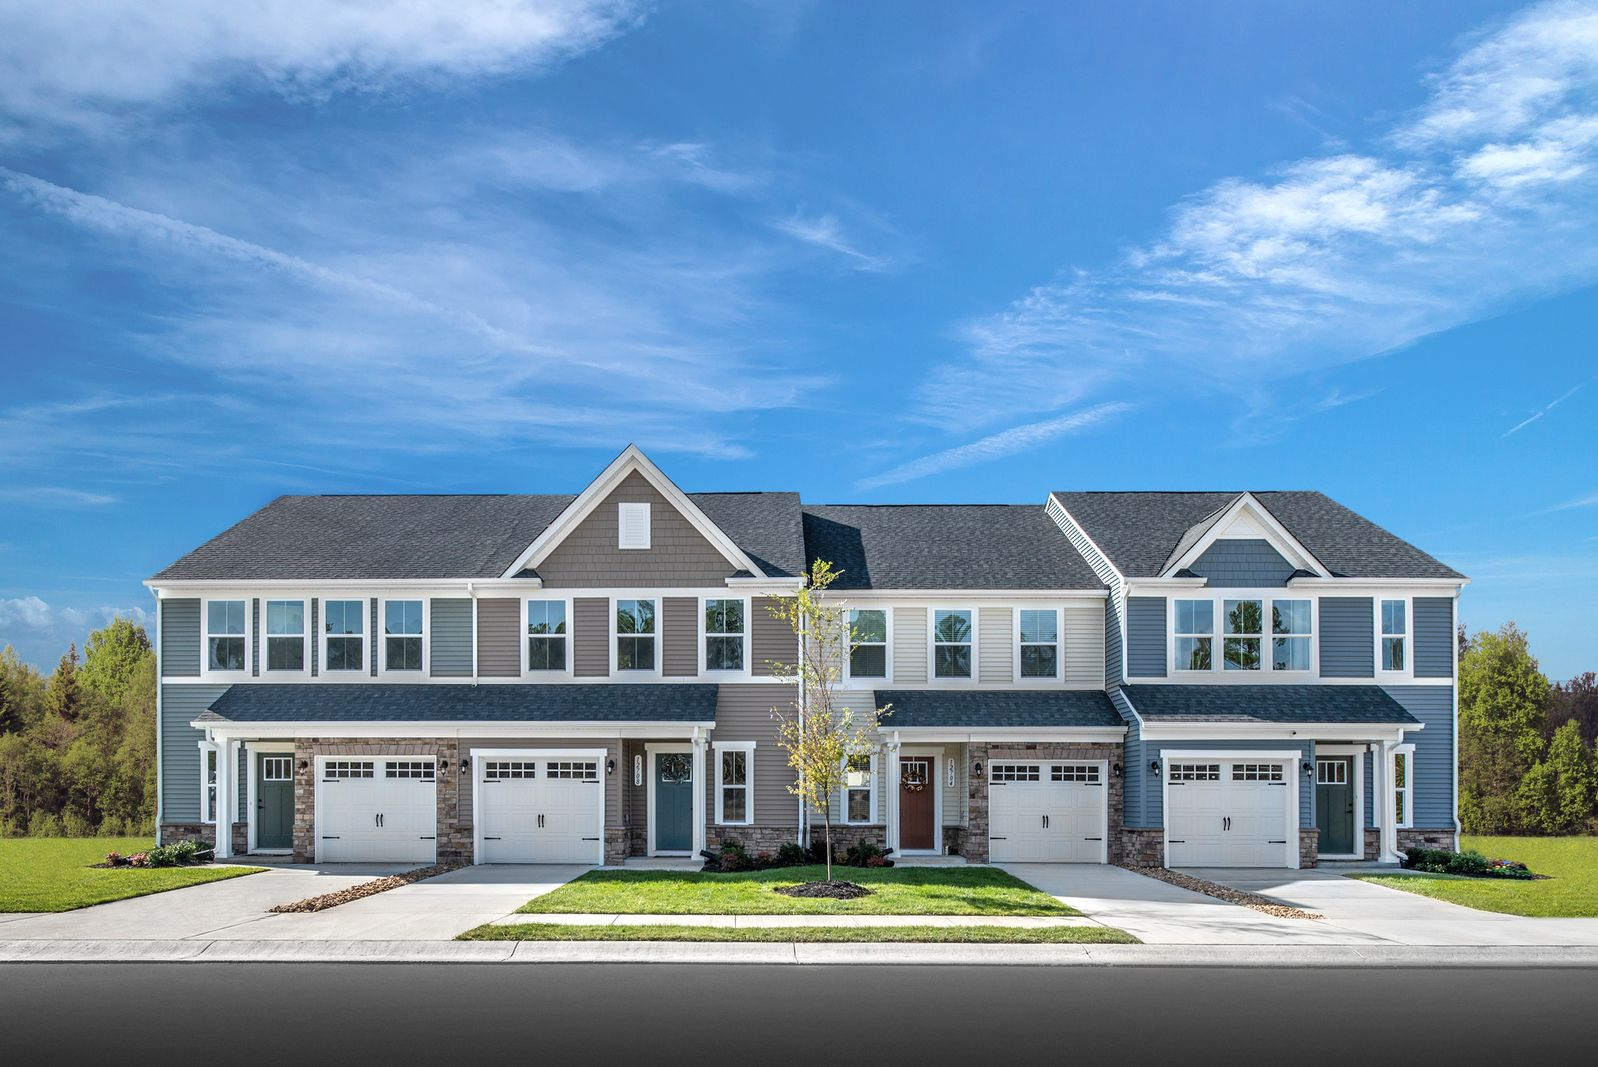 80% SOLD OUT. DON'T WAIT!:Settle into this highly sought-after Williamsburg community. New, 2-story, 3-bedroom, with garage and maintenance-free townhomesnow open in Arbordale in York County!Click here to schedule your visit